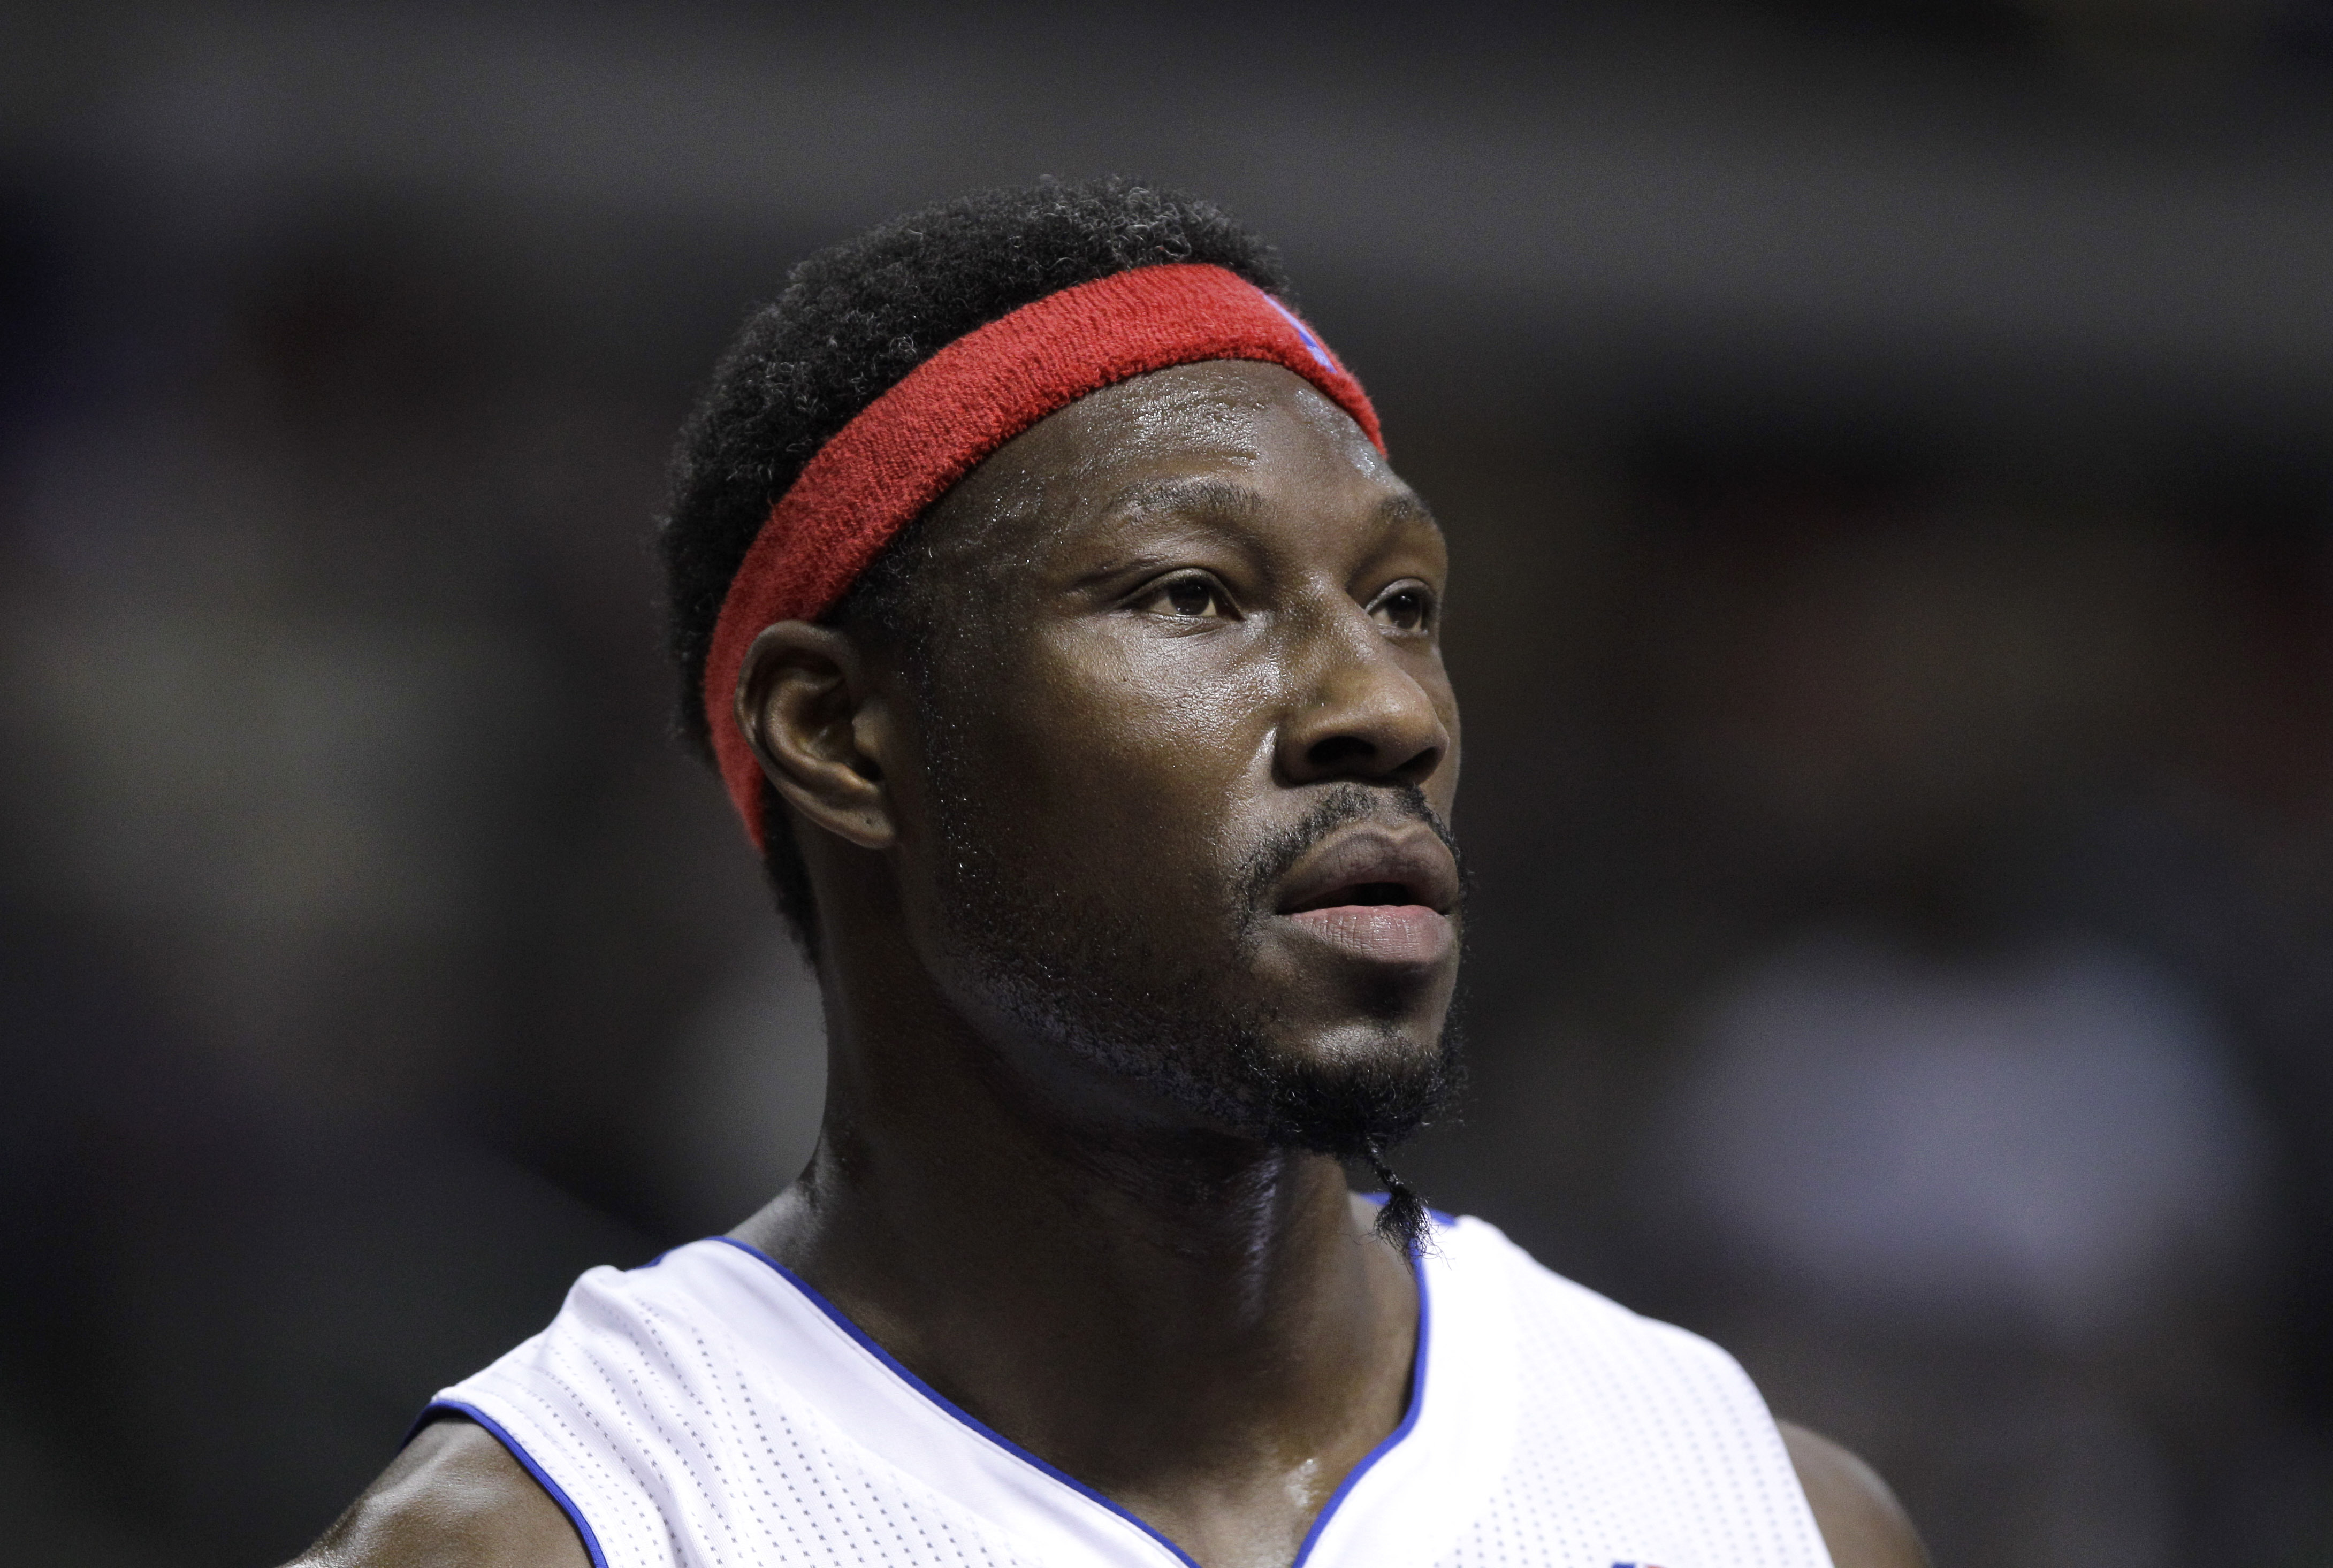 Pistons Ben Wallace arrested for DUI weapon CBS News